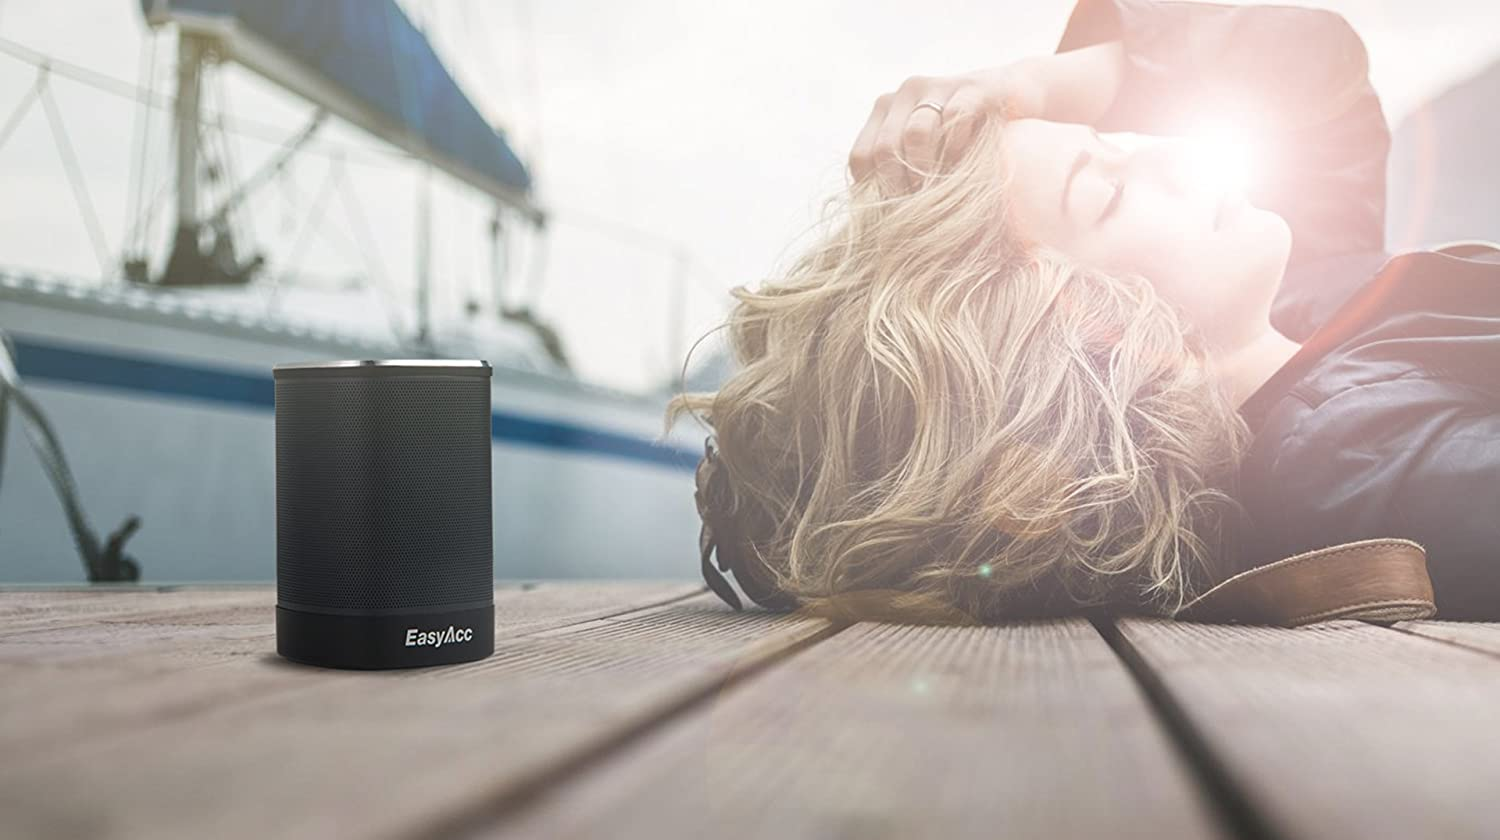 EasyAcc DP100 Mini Bluetooth Speaker